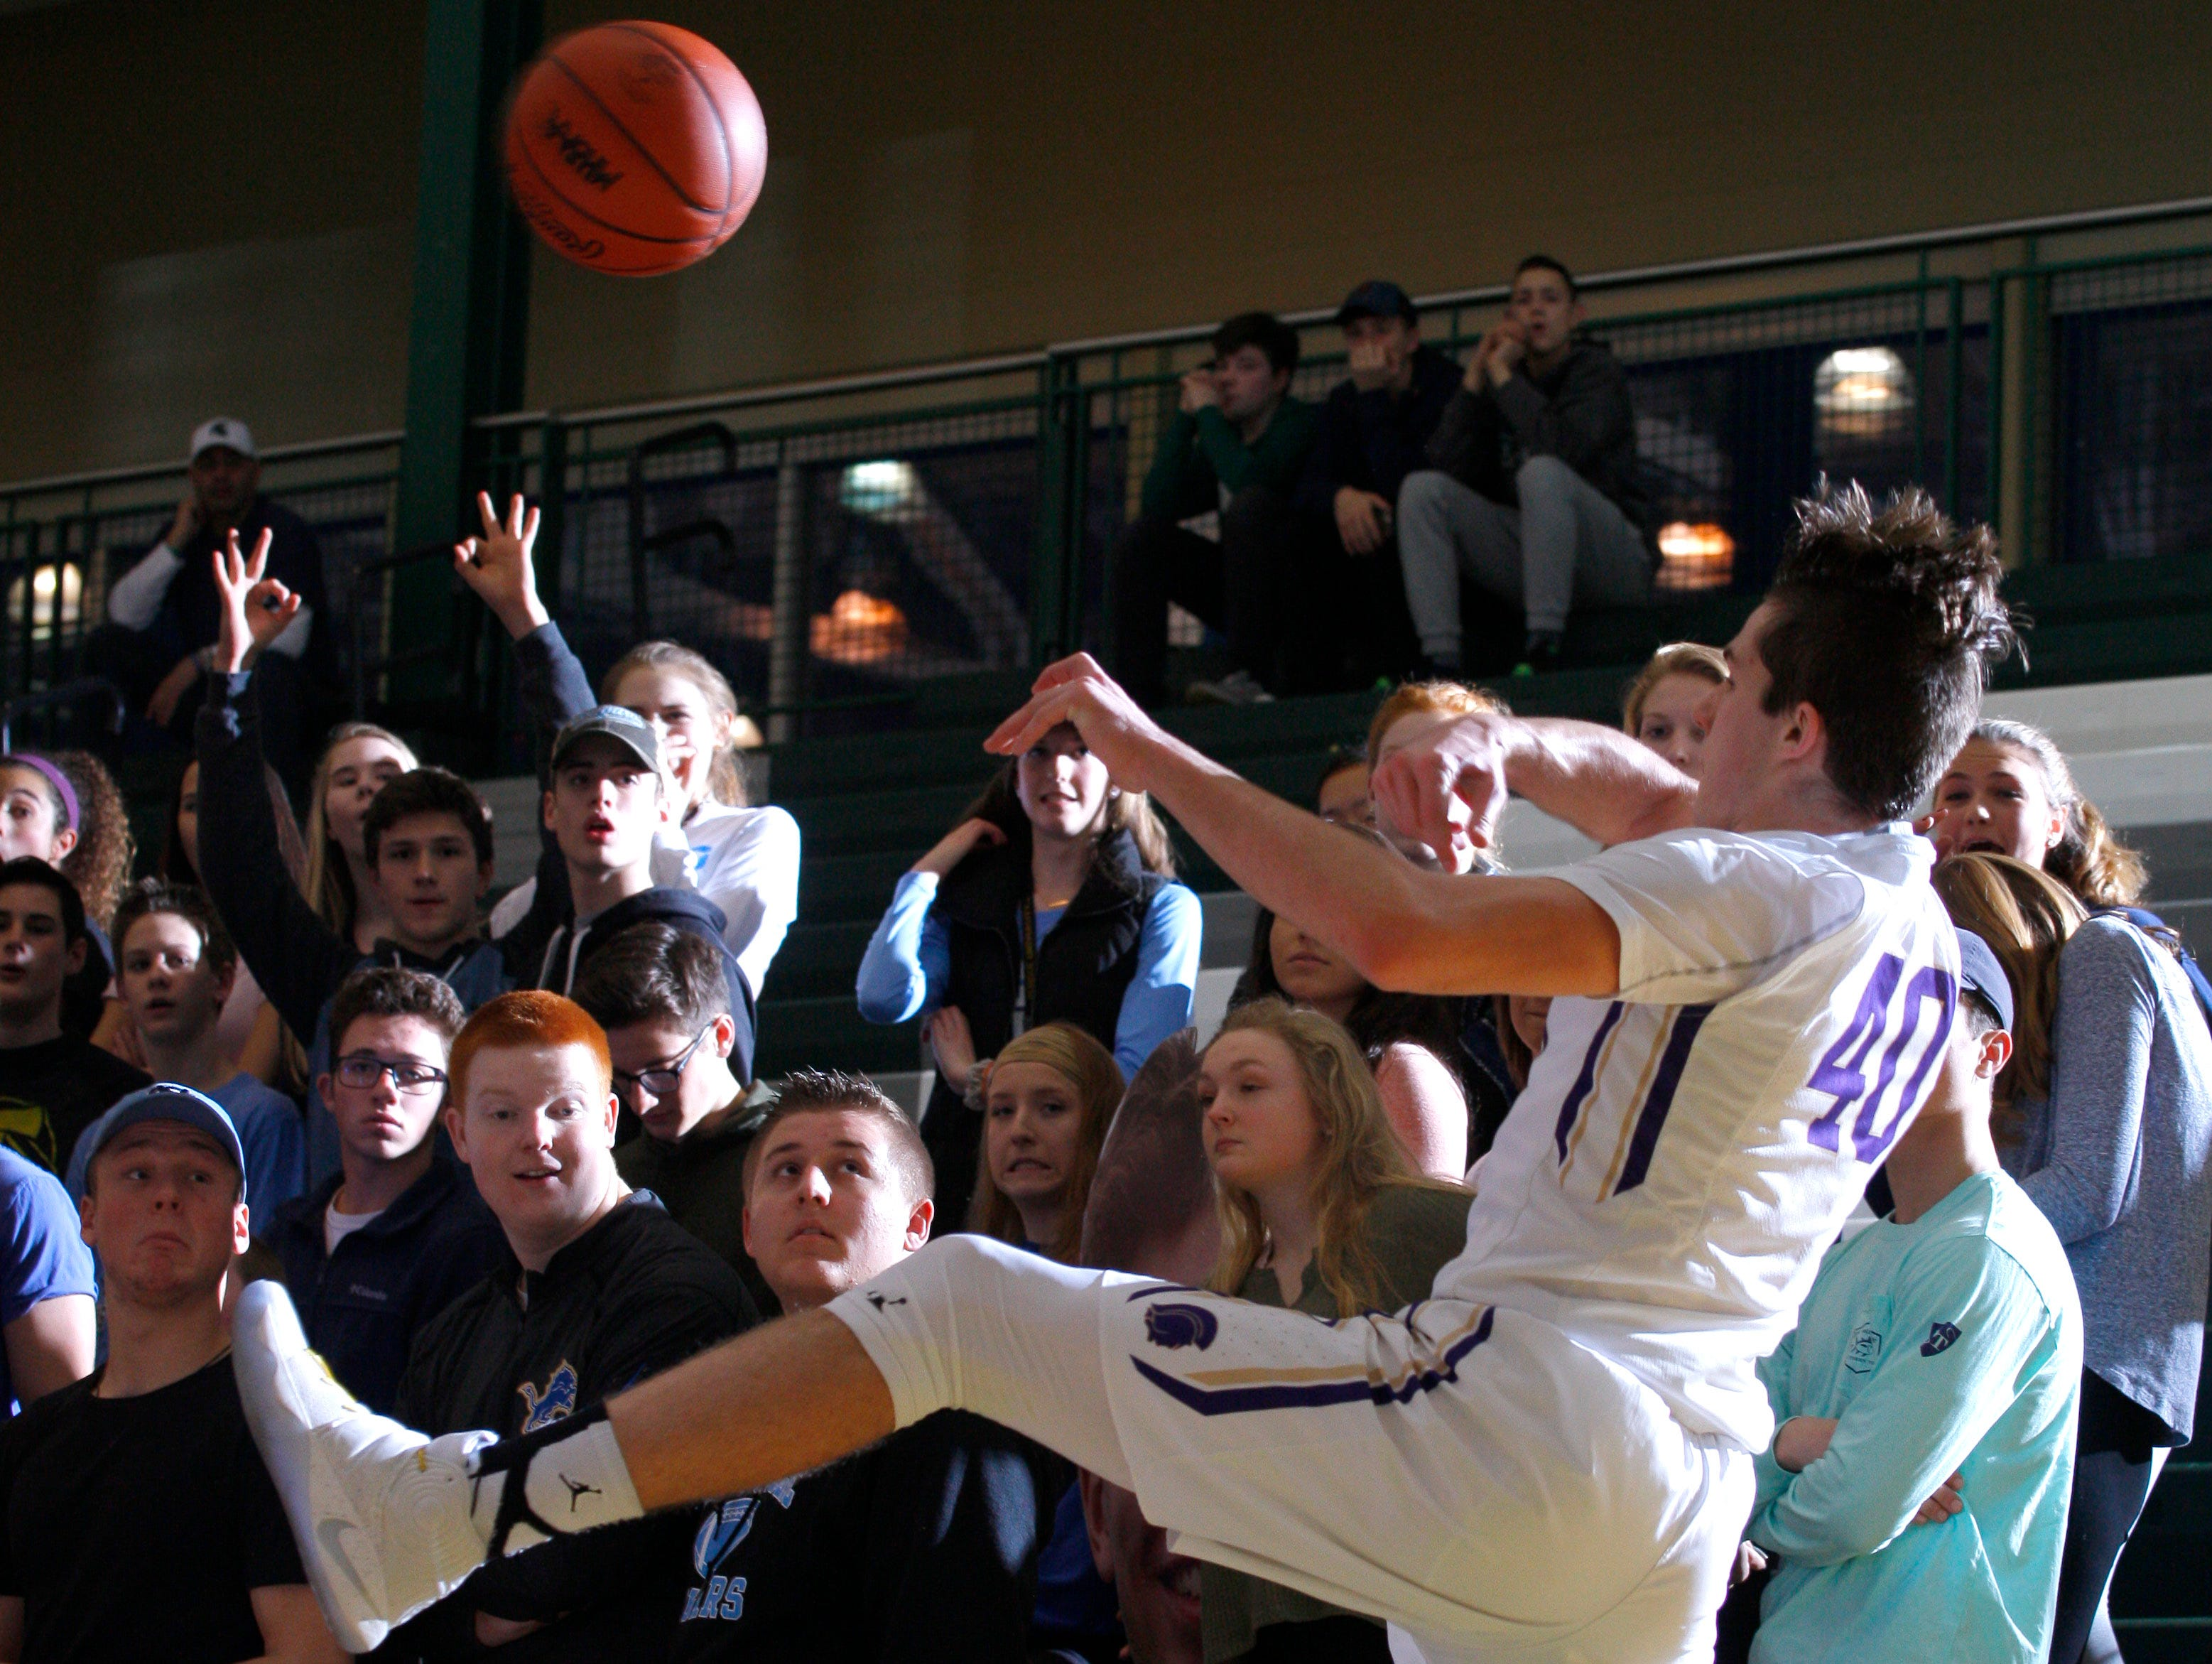 Fowlerville's Geoffrey Knaggs leaps to tap a deflected ball back to a teammate against Lansing Catholic during their district game Monday, March 6, 2017, in East Lansing, Mich. Fowlerville won 66-52.